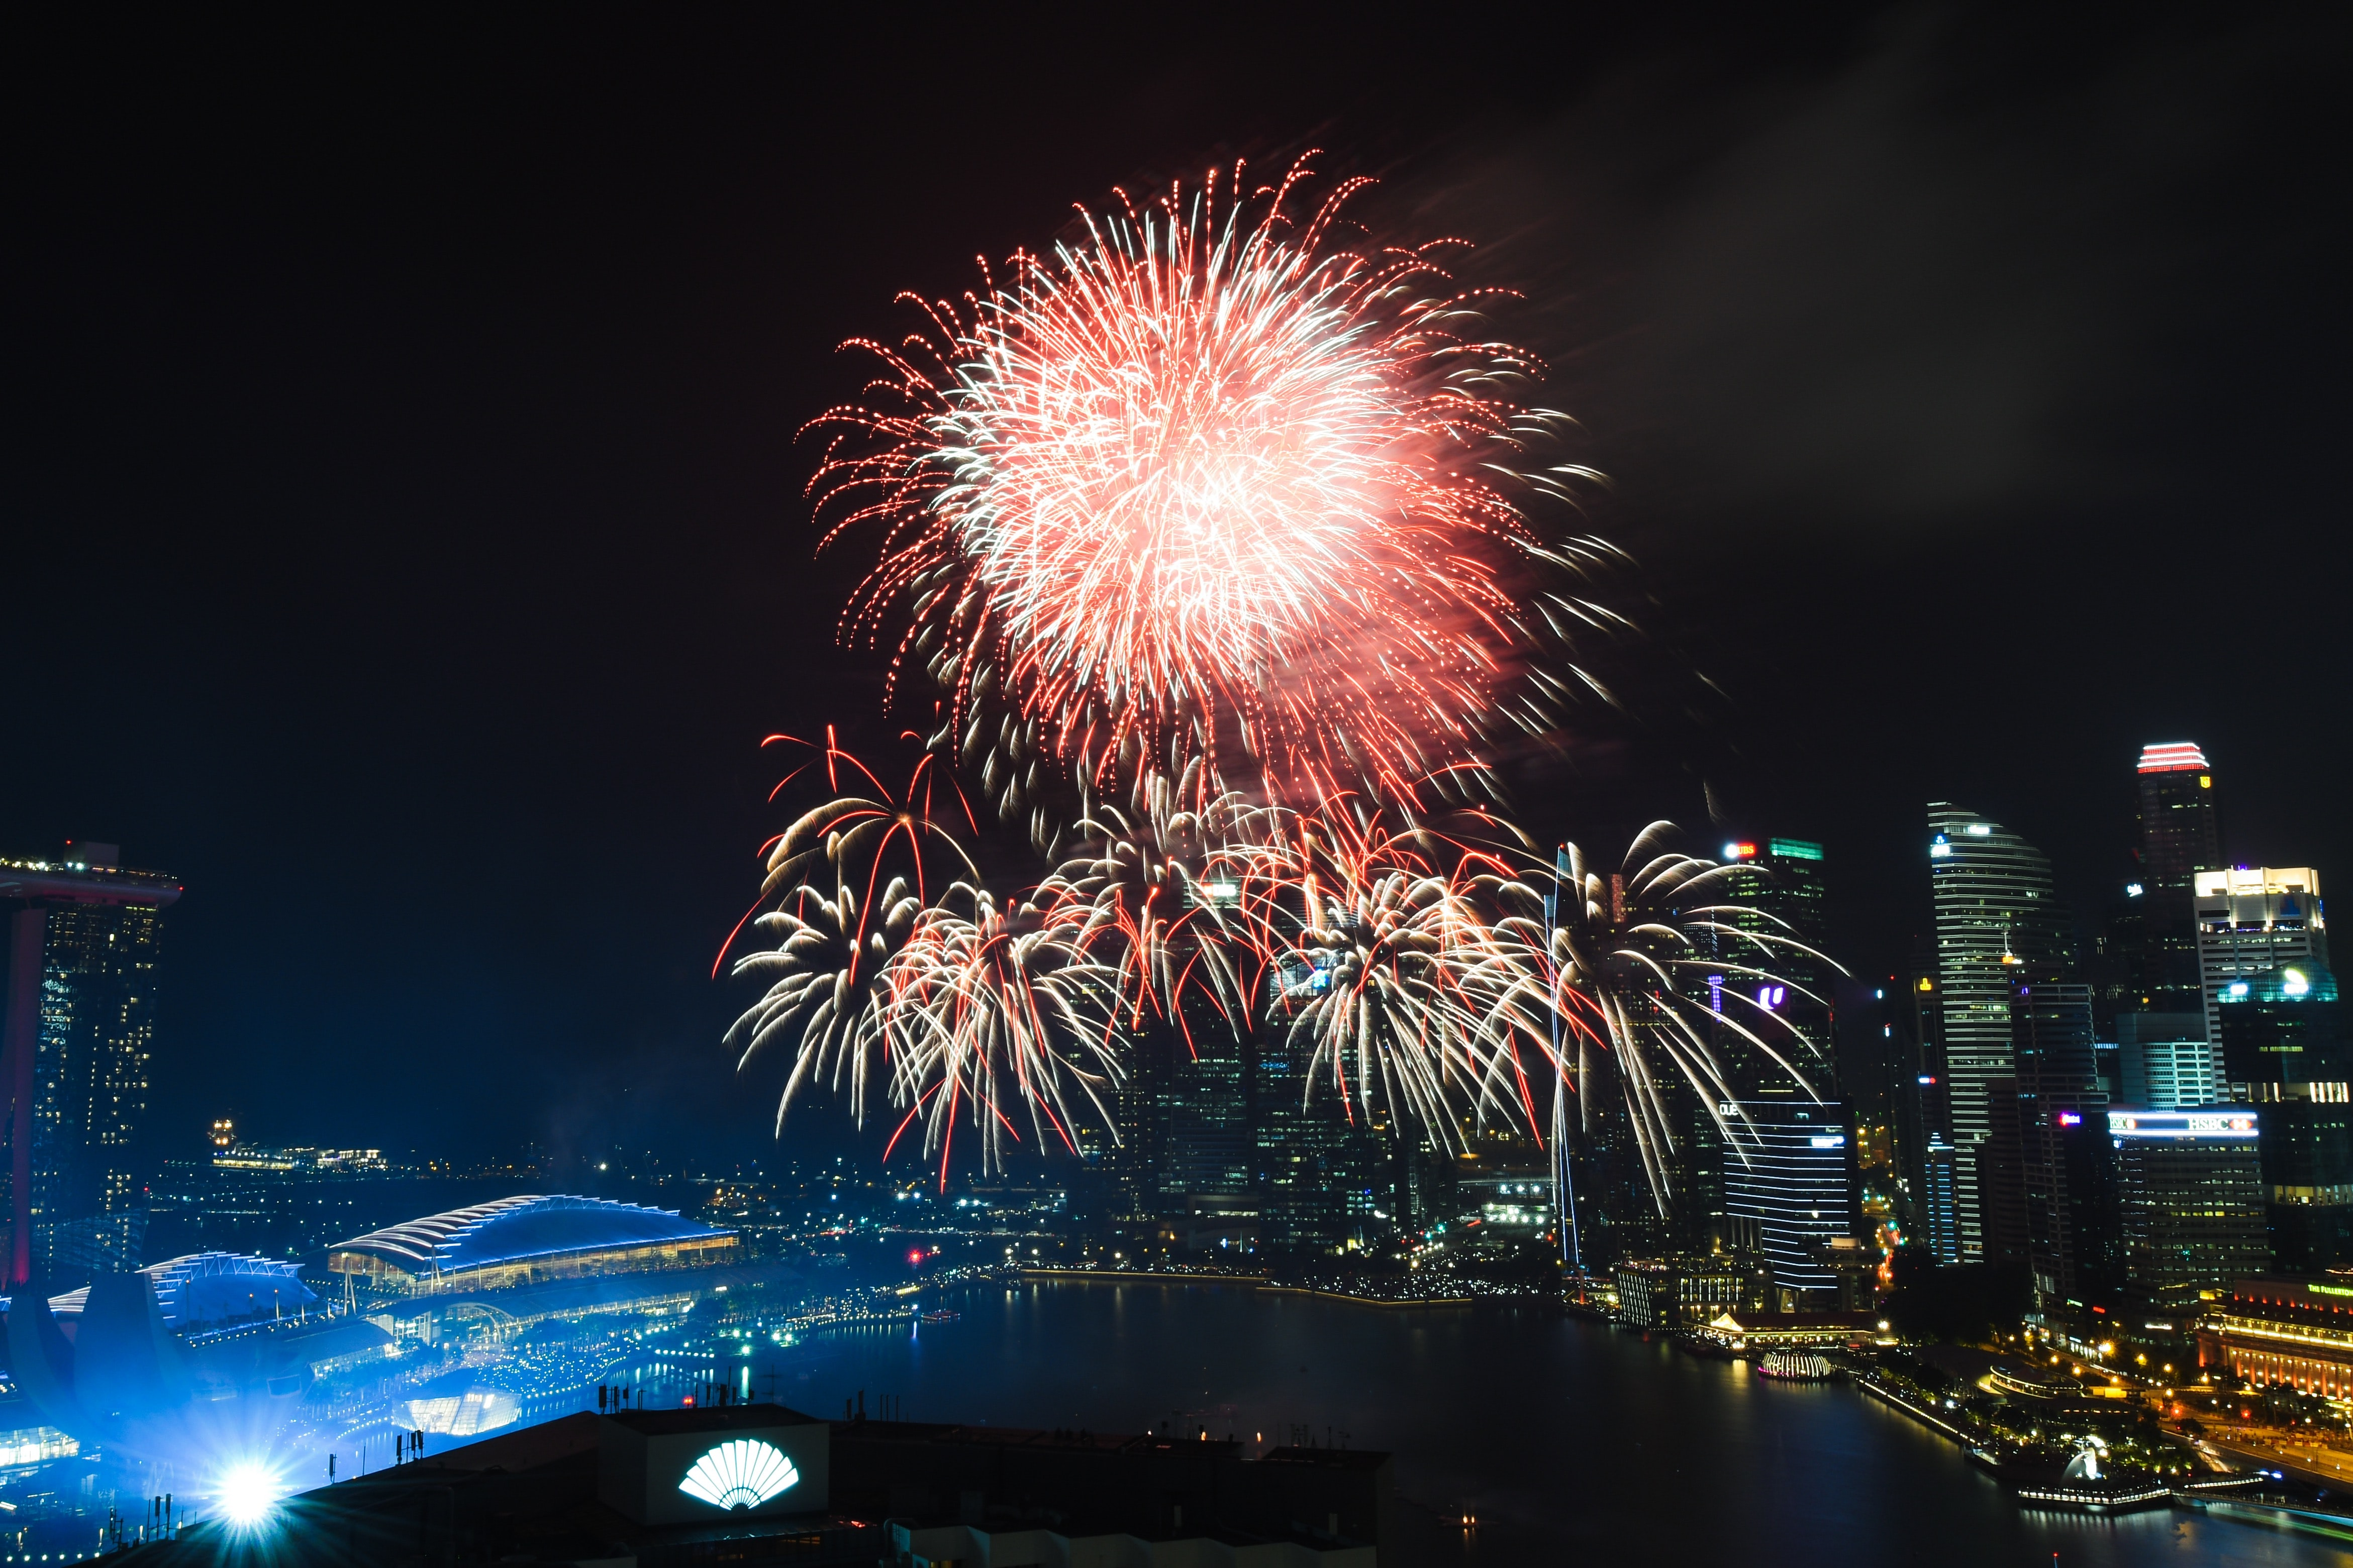 fireworks exploding on sky of Marina Bay Sands at nighttime